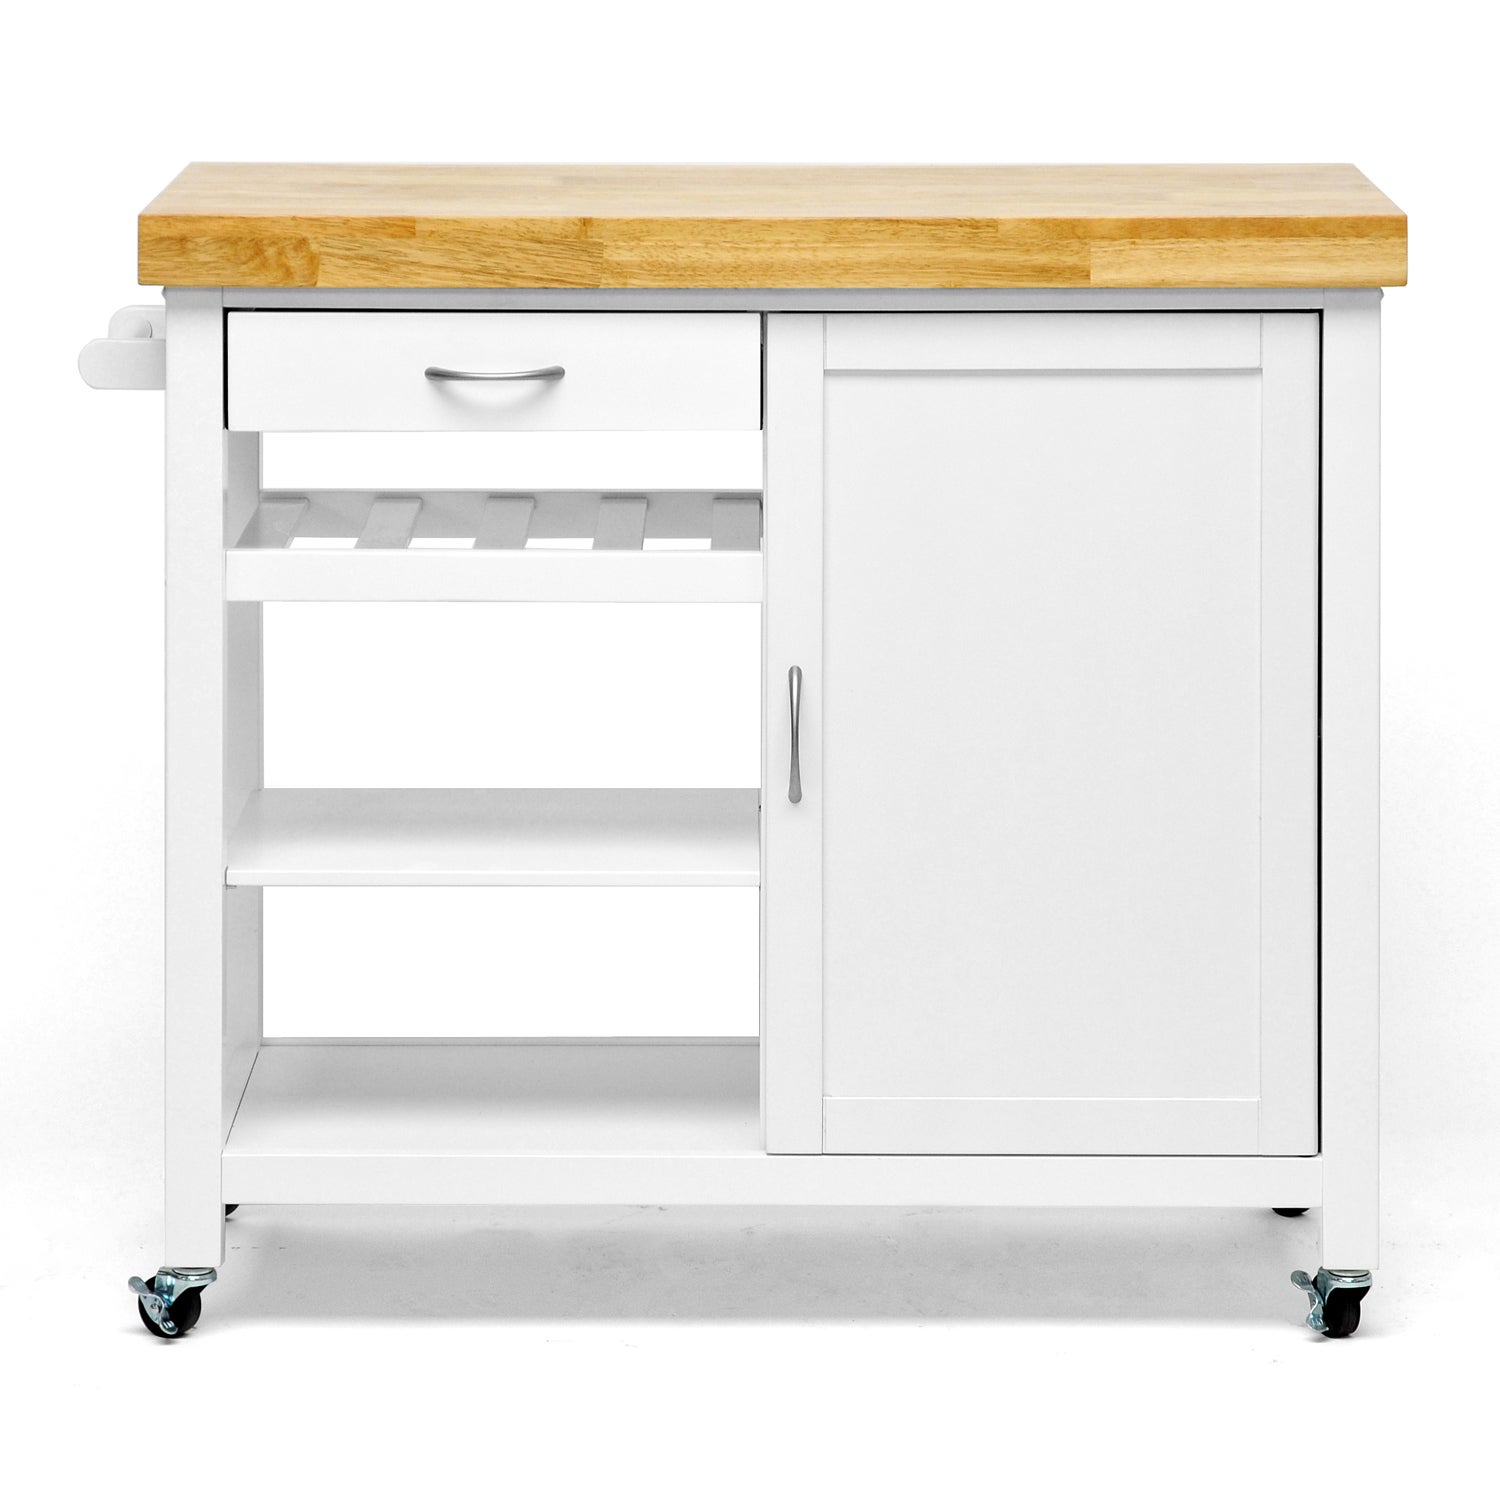 denver white modern kitchen cart 41b454f9 e0f6 43f3 abeb 1b67cab5500d